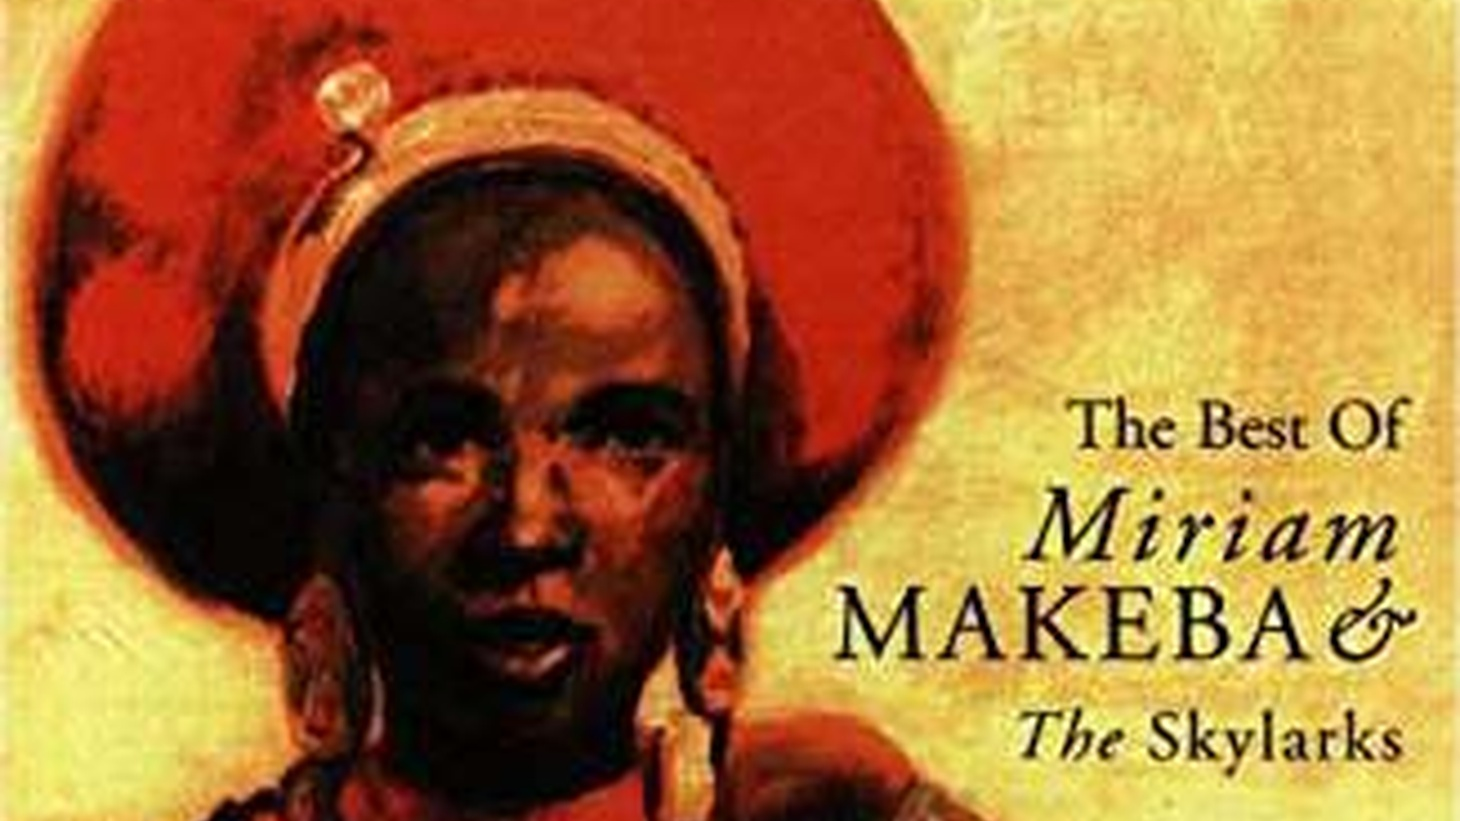 Songs from Miriam Makeba, Johnny & Sipho, Sibongile Khumalo, Lucky Dube, and more.